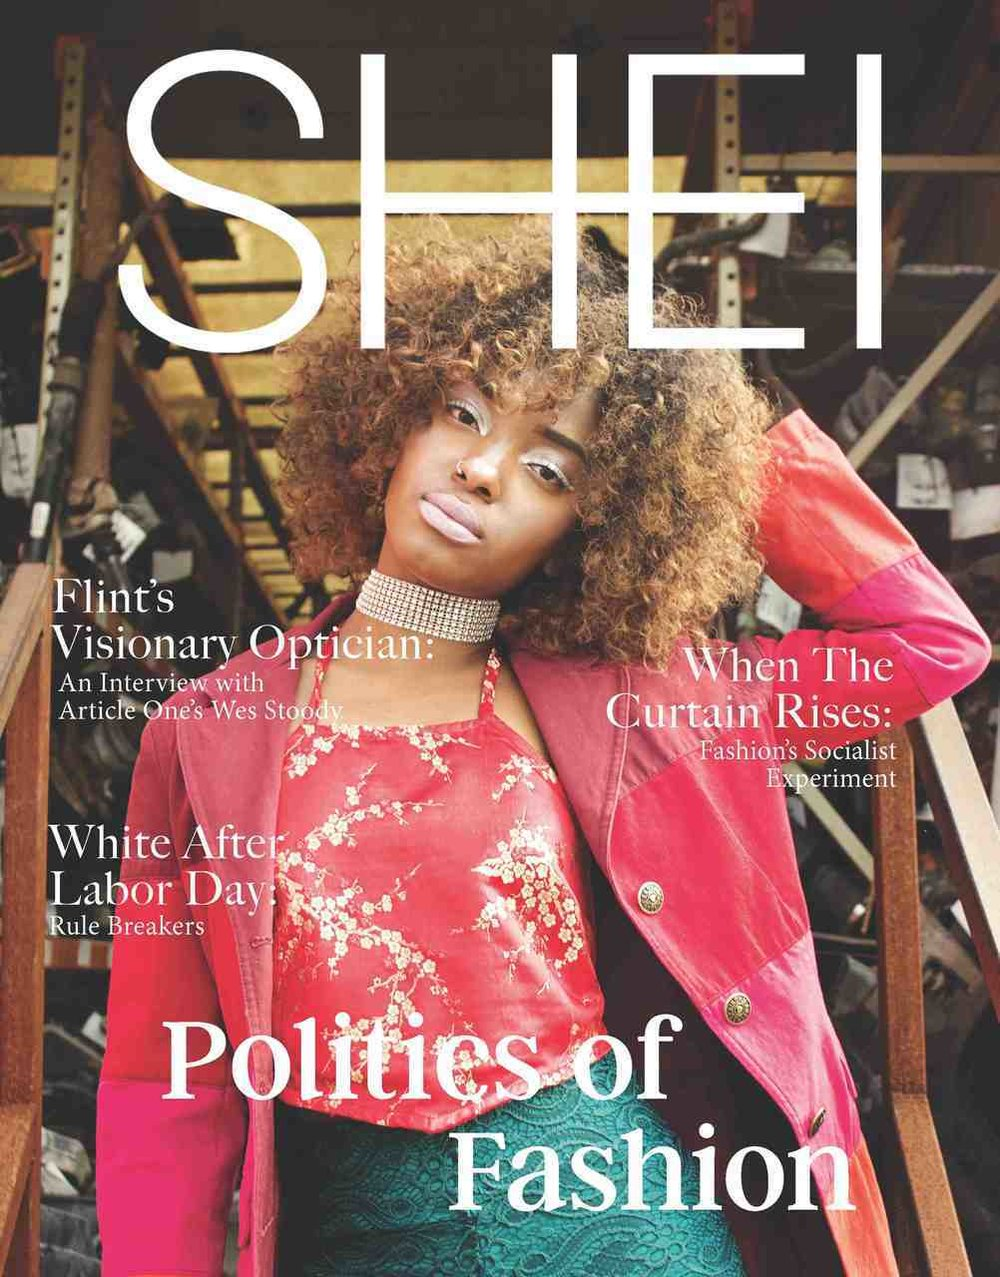 SHEI_Politics_of_Fashion_Cover__39597.1480458004.1280.1280.jpg